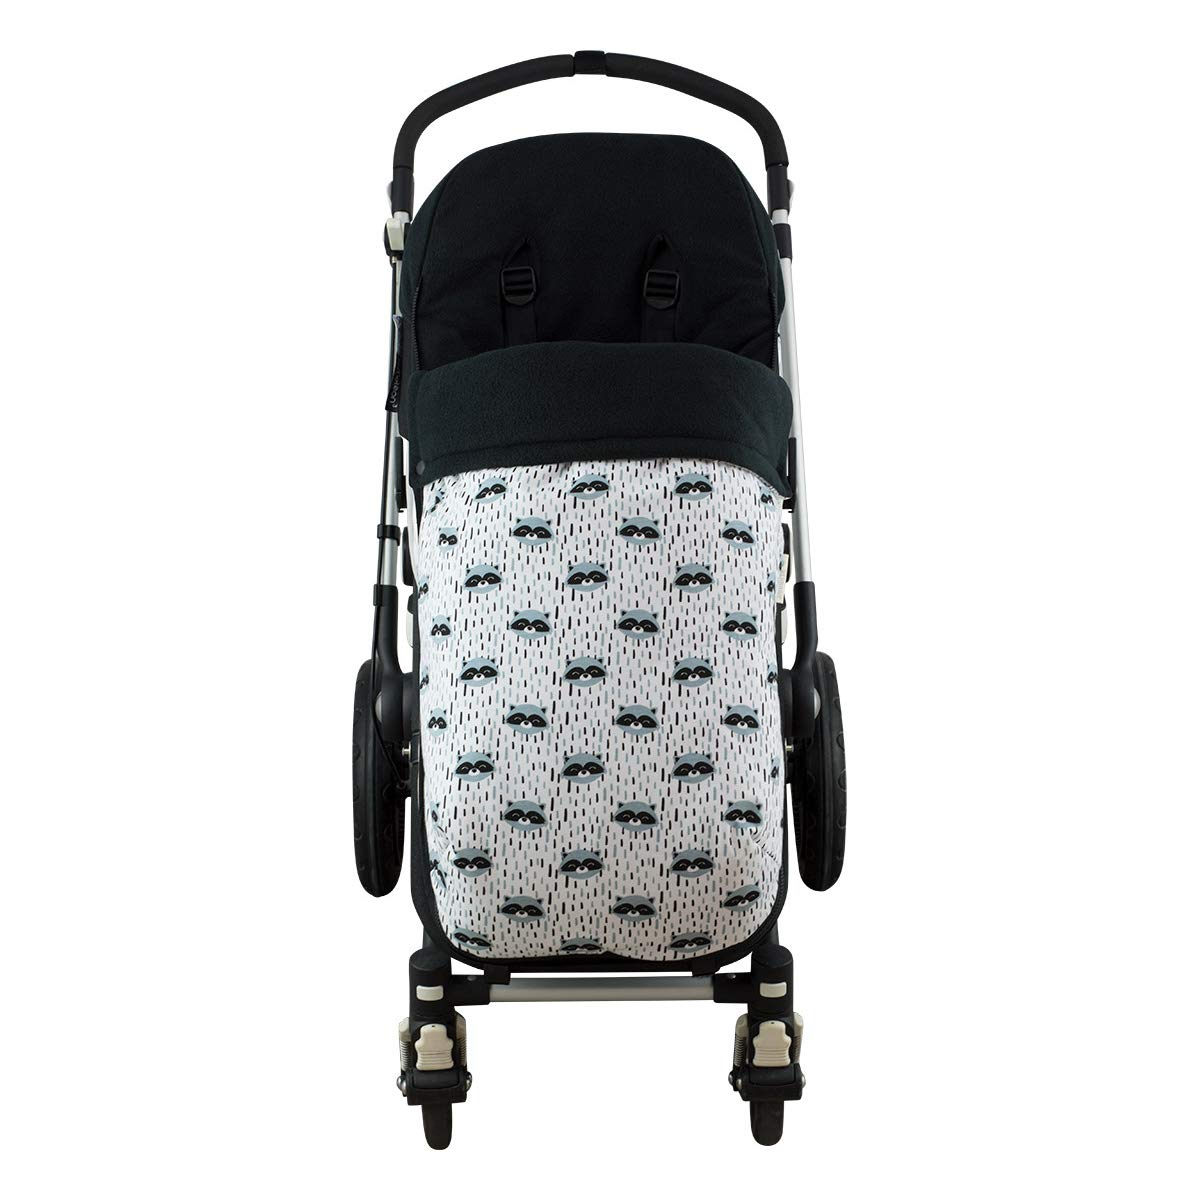 Janabebé Universal Baby Footmuff Sack for Pushchairs (Bugaboo, Graco, Cybex and More) (Raccoon, Polar Fleece) by JANABEBE